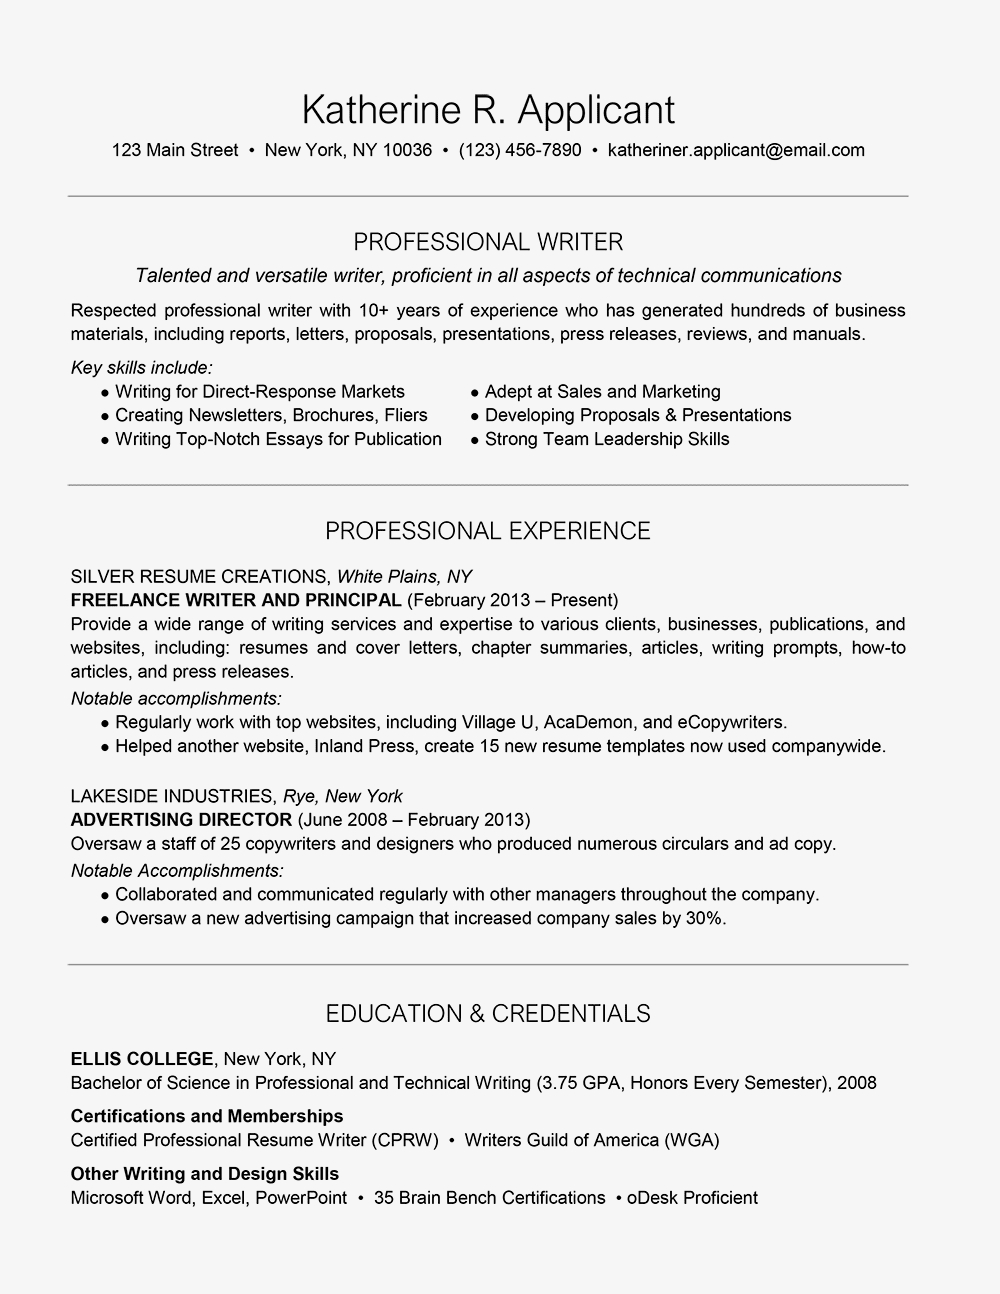 Professional Summary for Resume No Work Experience - Professional Writer Resume Example and Writing Tips